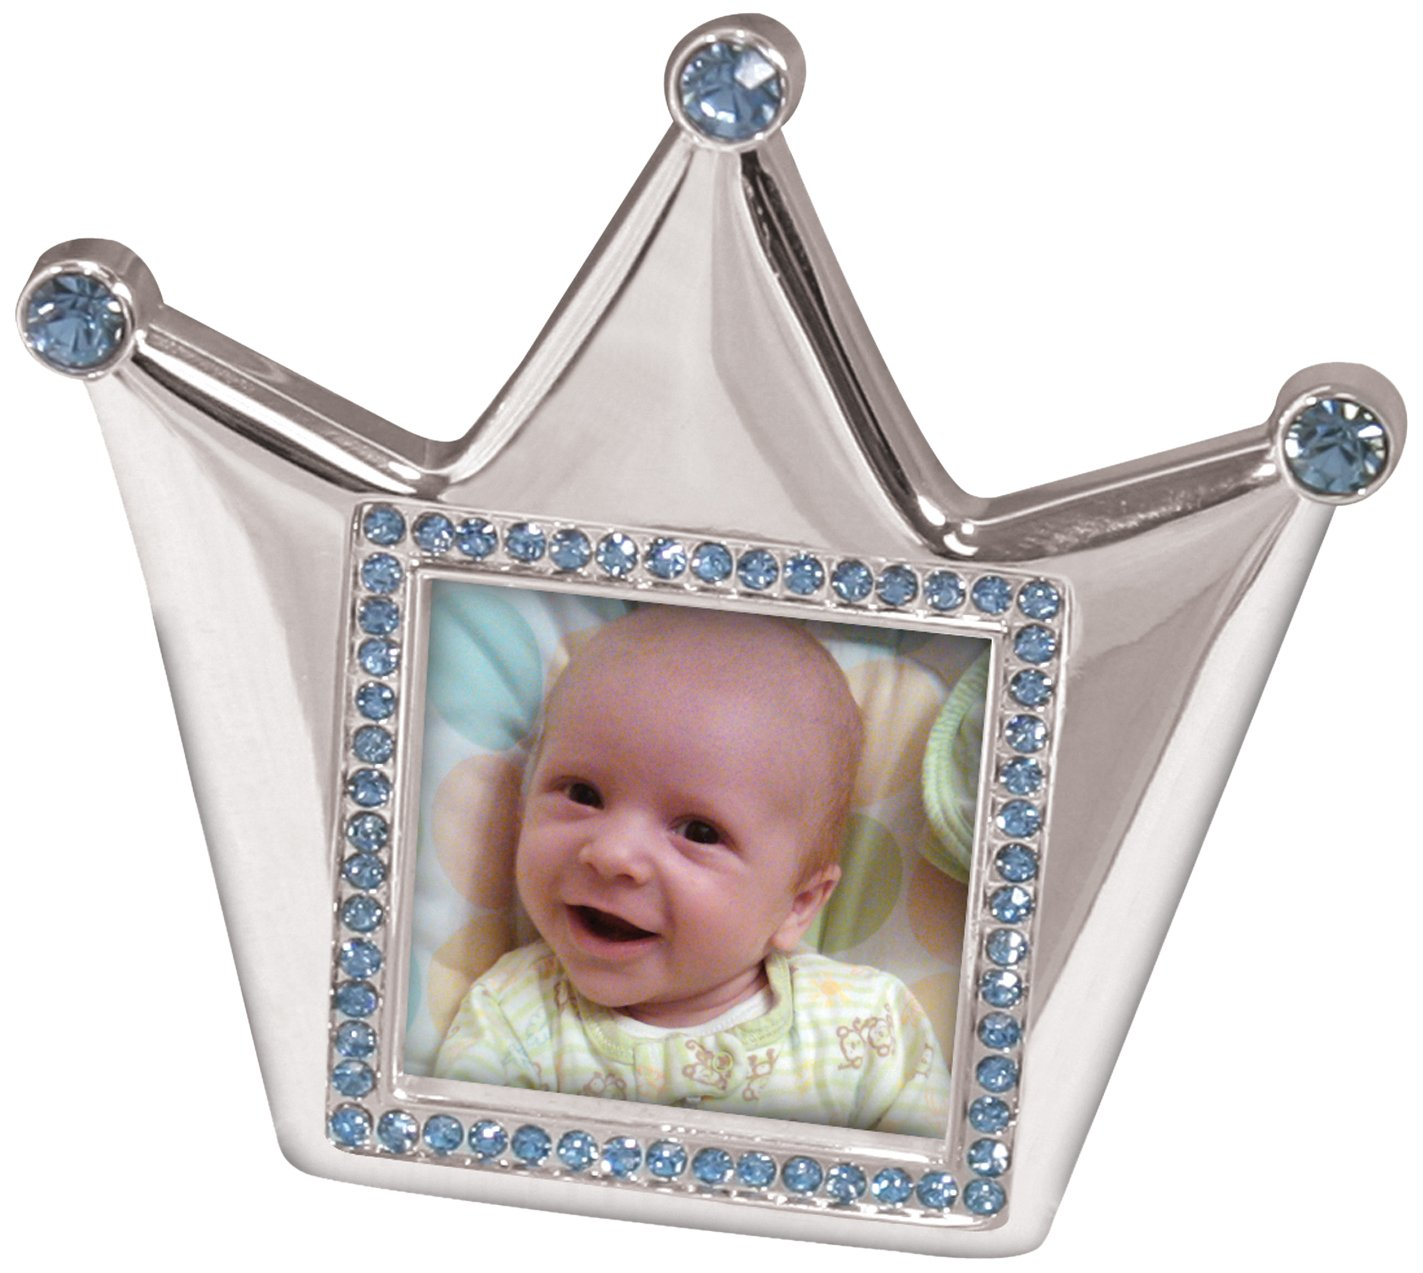 Stephan Baby Royalty Collection Keepsake Silver Plated Frame, Little Prince Crown 217114